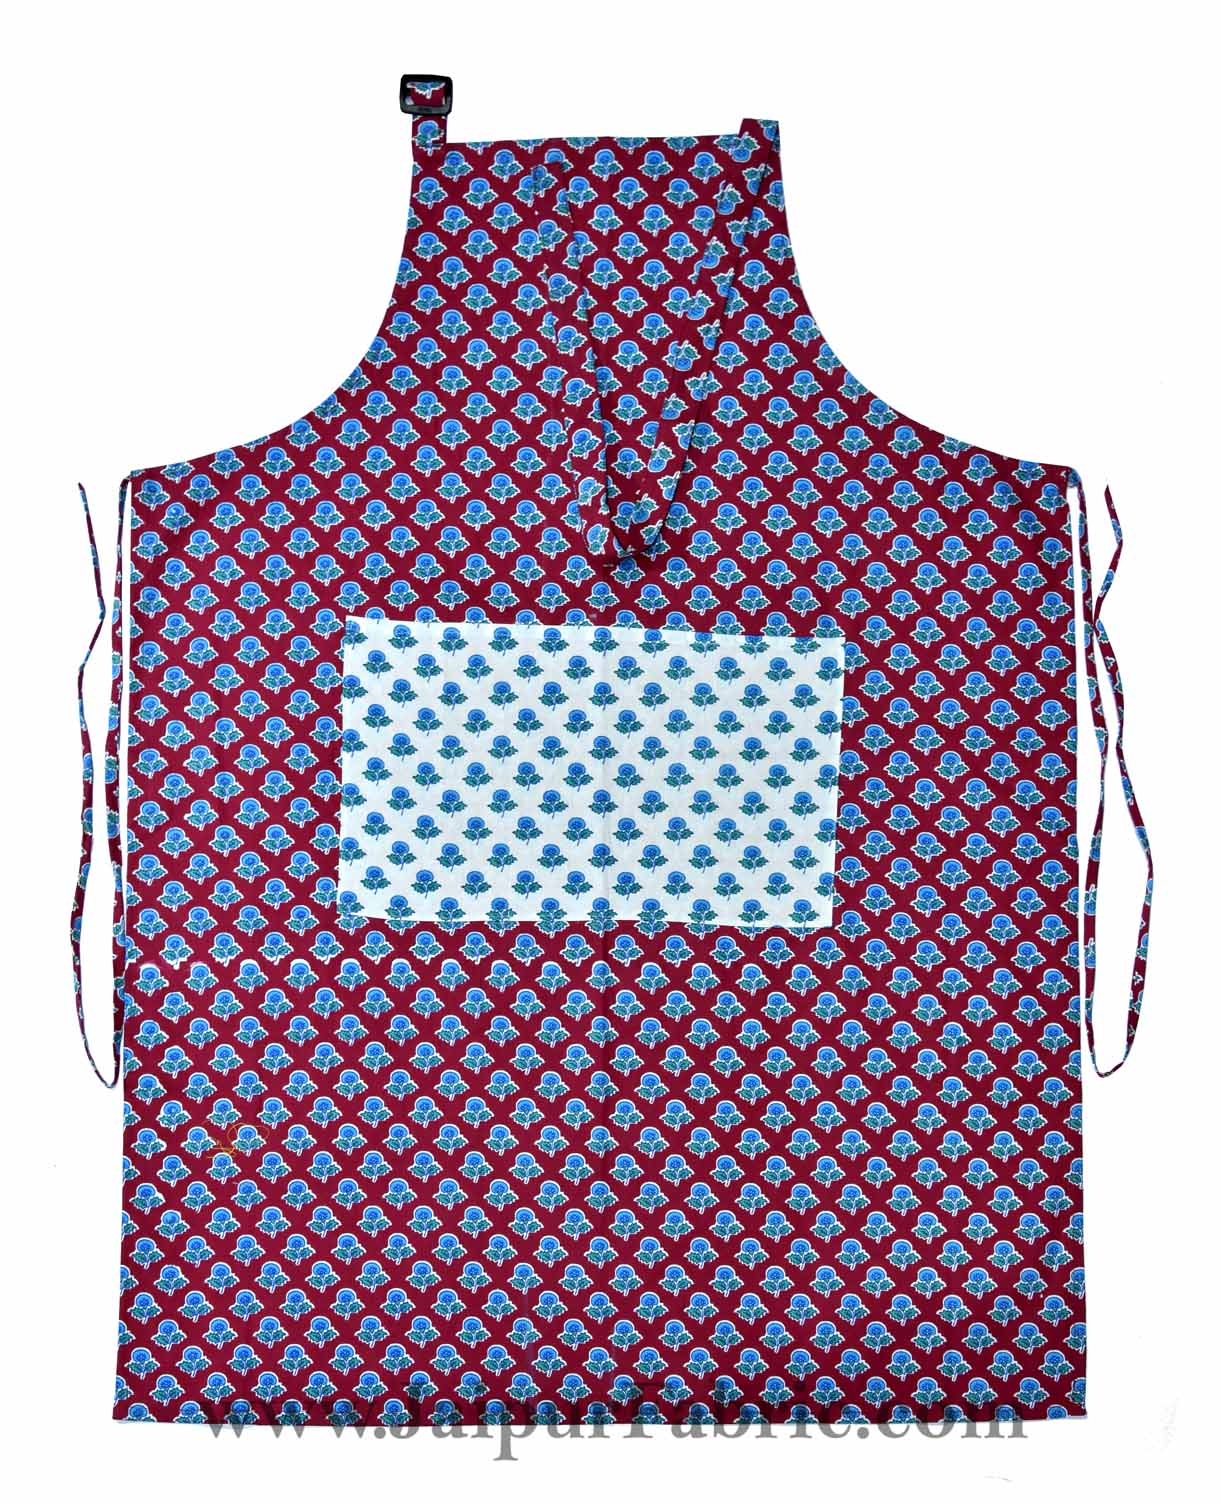 Buti print brick red apron